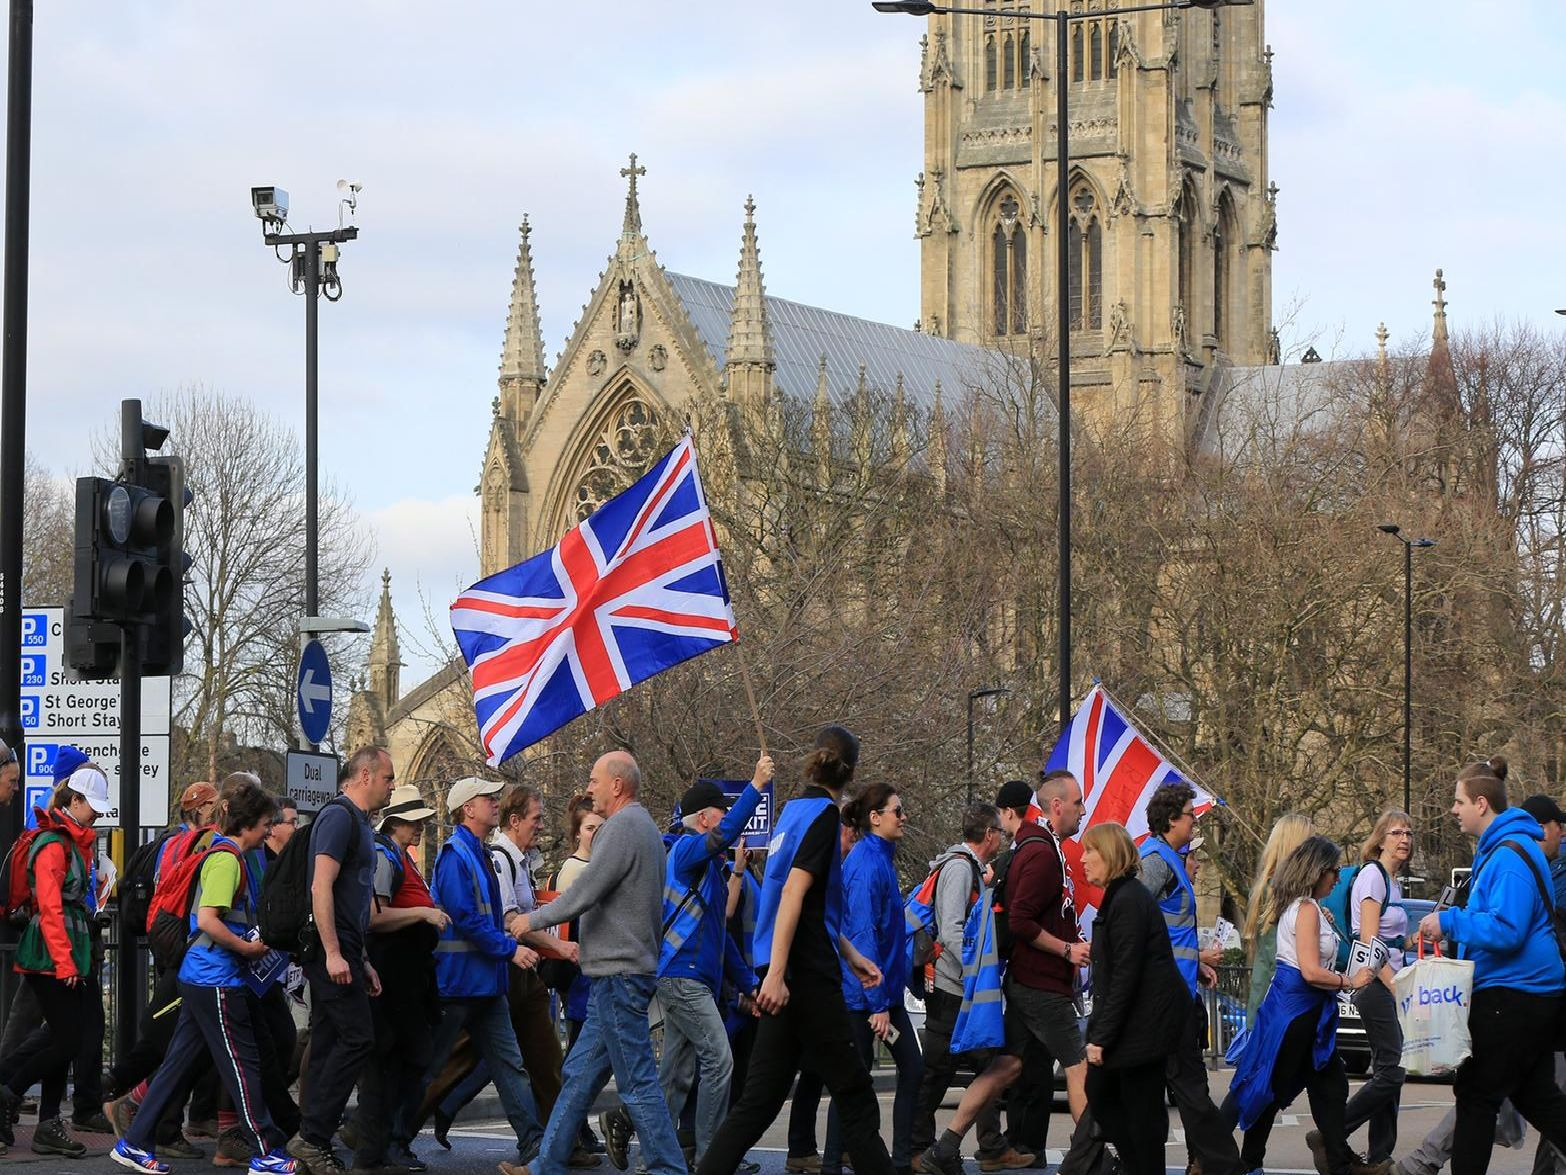 The Leave Means Leave march arrives in Doncaster.